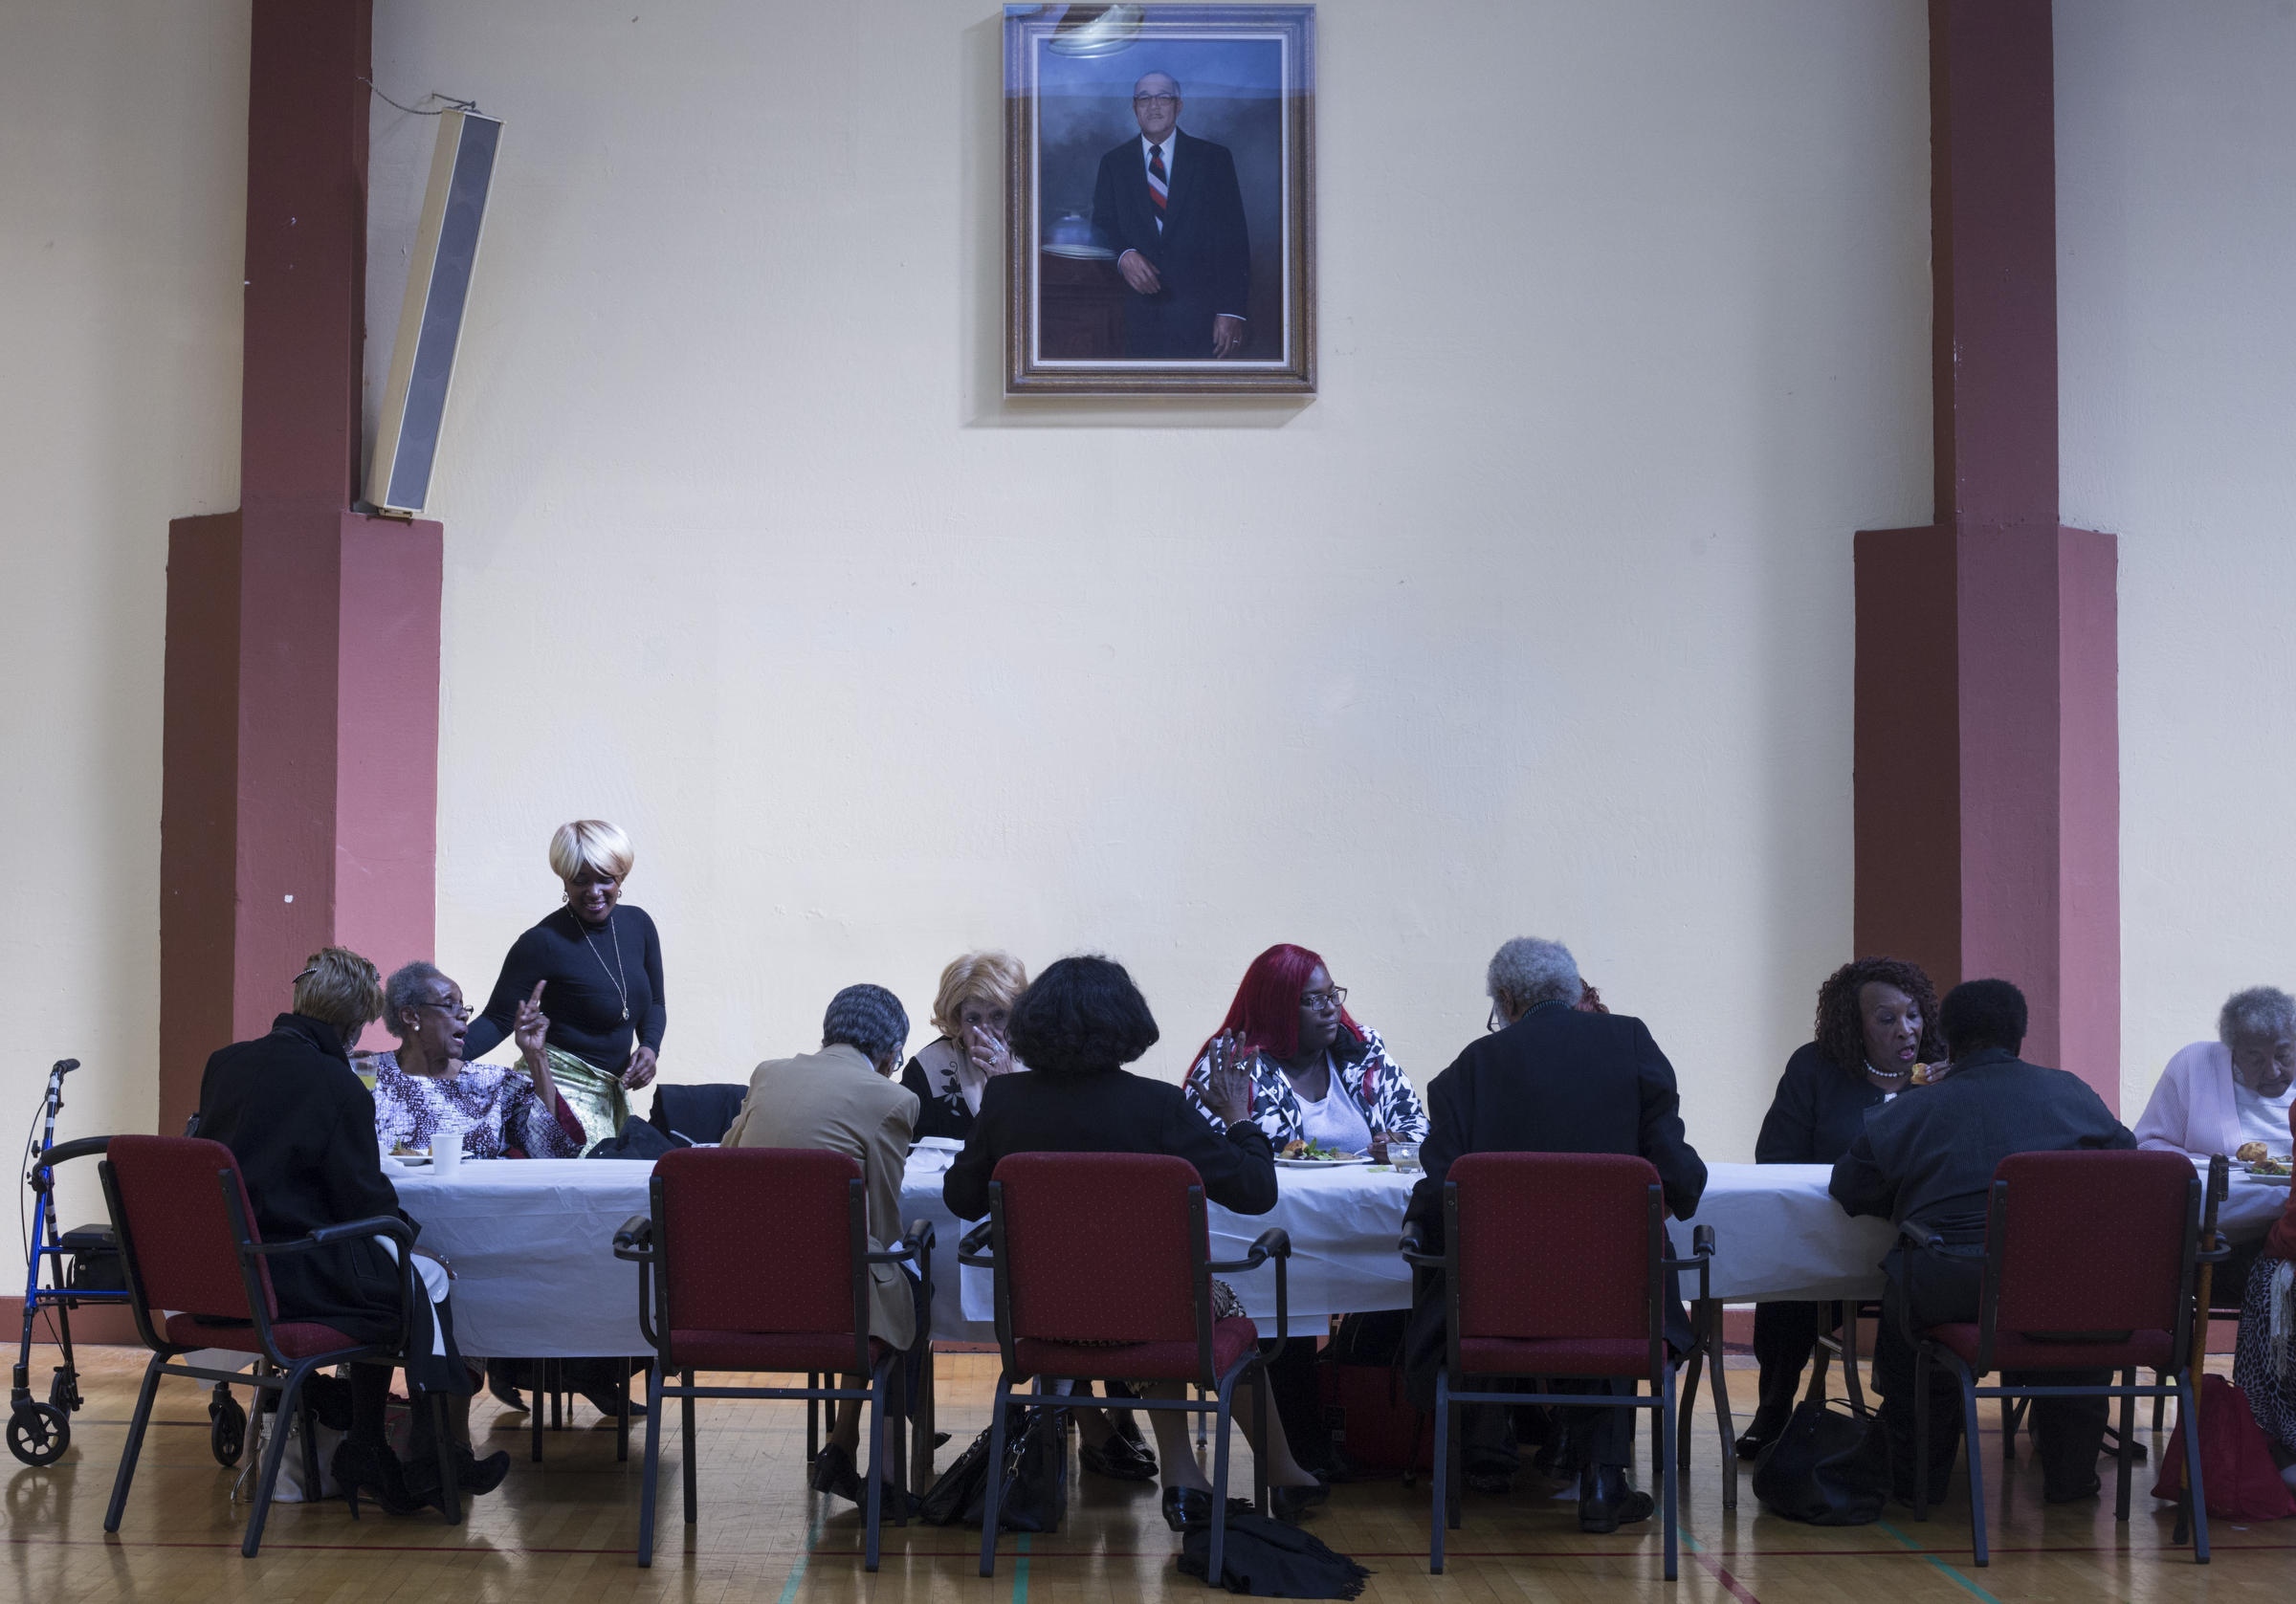 Members of the congregation sit for a luncheon following the service at the Third Street Baptist Church in the Fillmore, a quickly gentrifying district, of San Francisco, California., on Sunday, November 5, 2017.